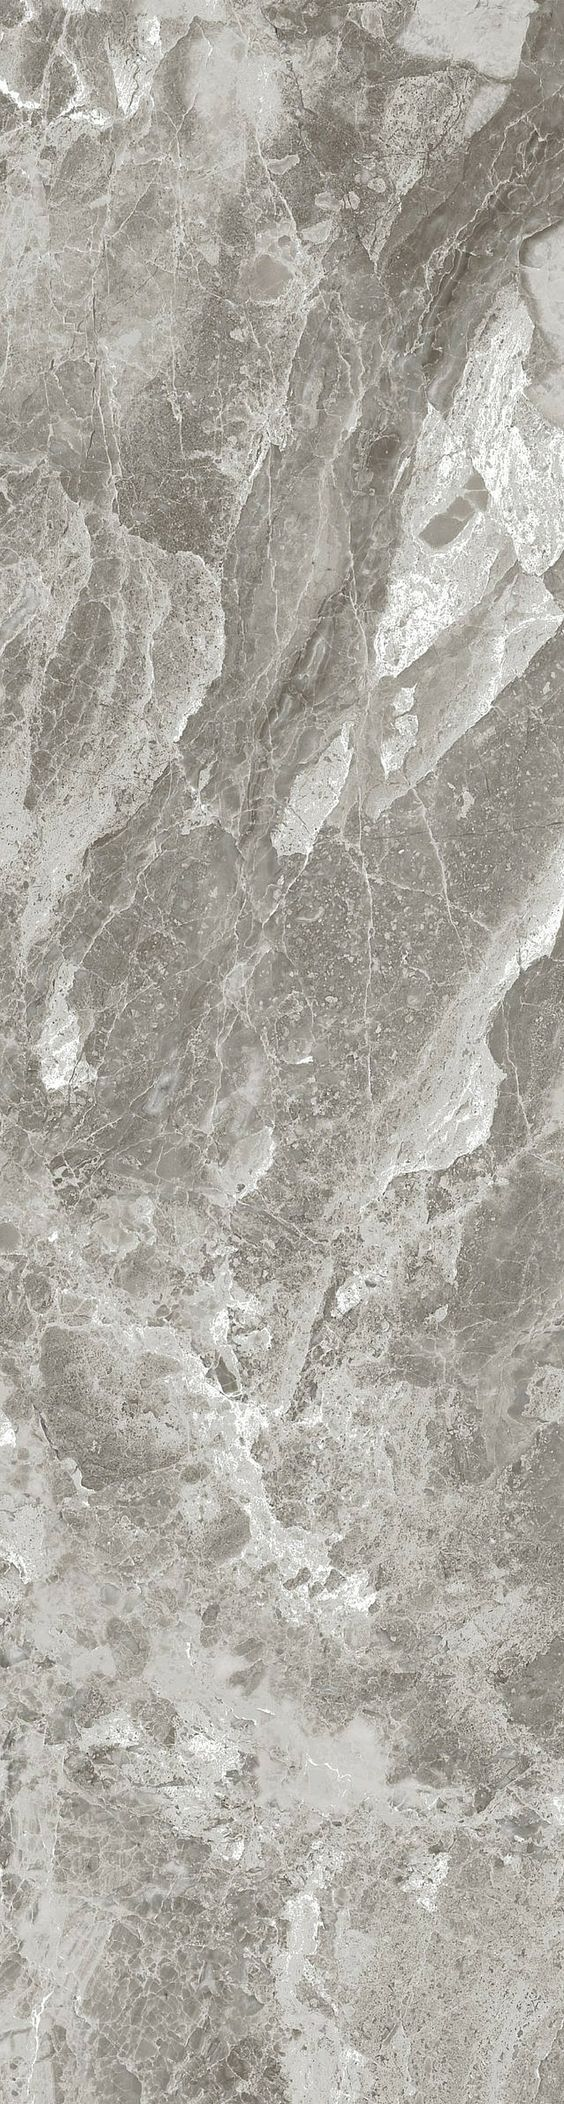 Porcelain tile marble look classic bardiglietto a for Textura del marmol